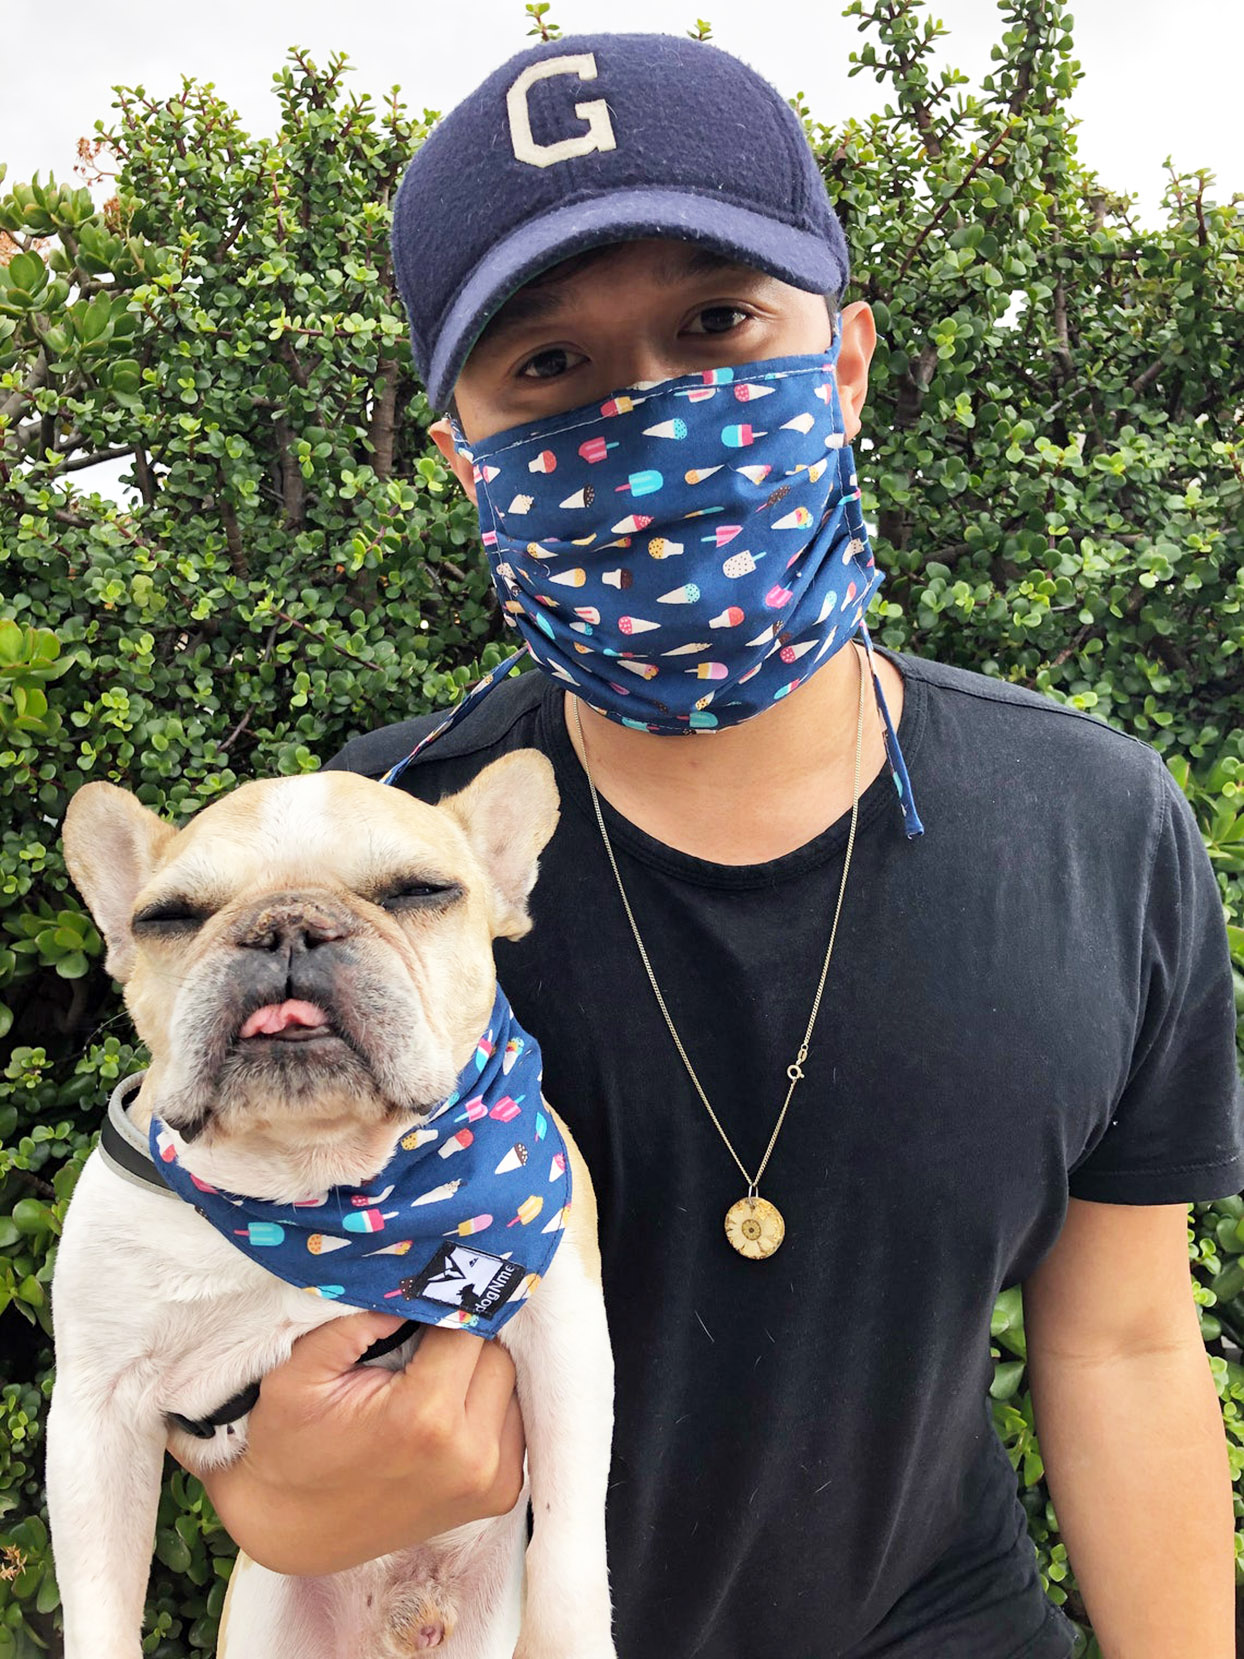 Person in cloth face mask poses with dog in matching bandana